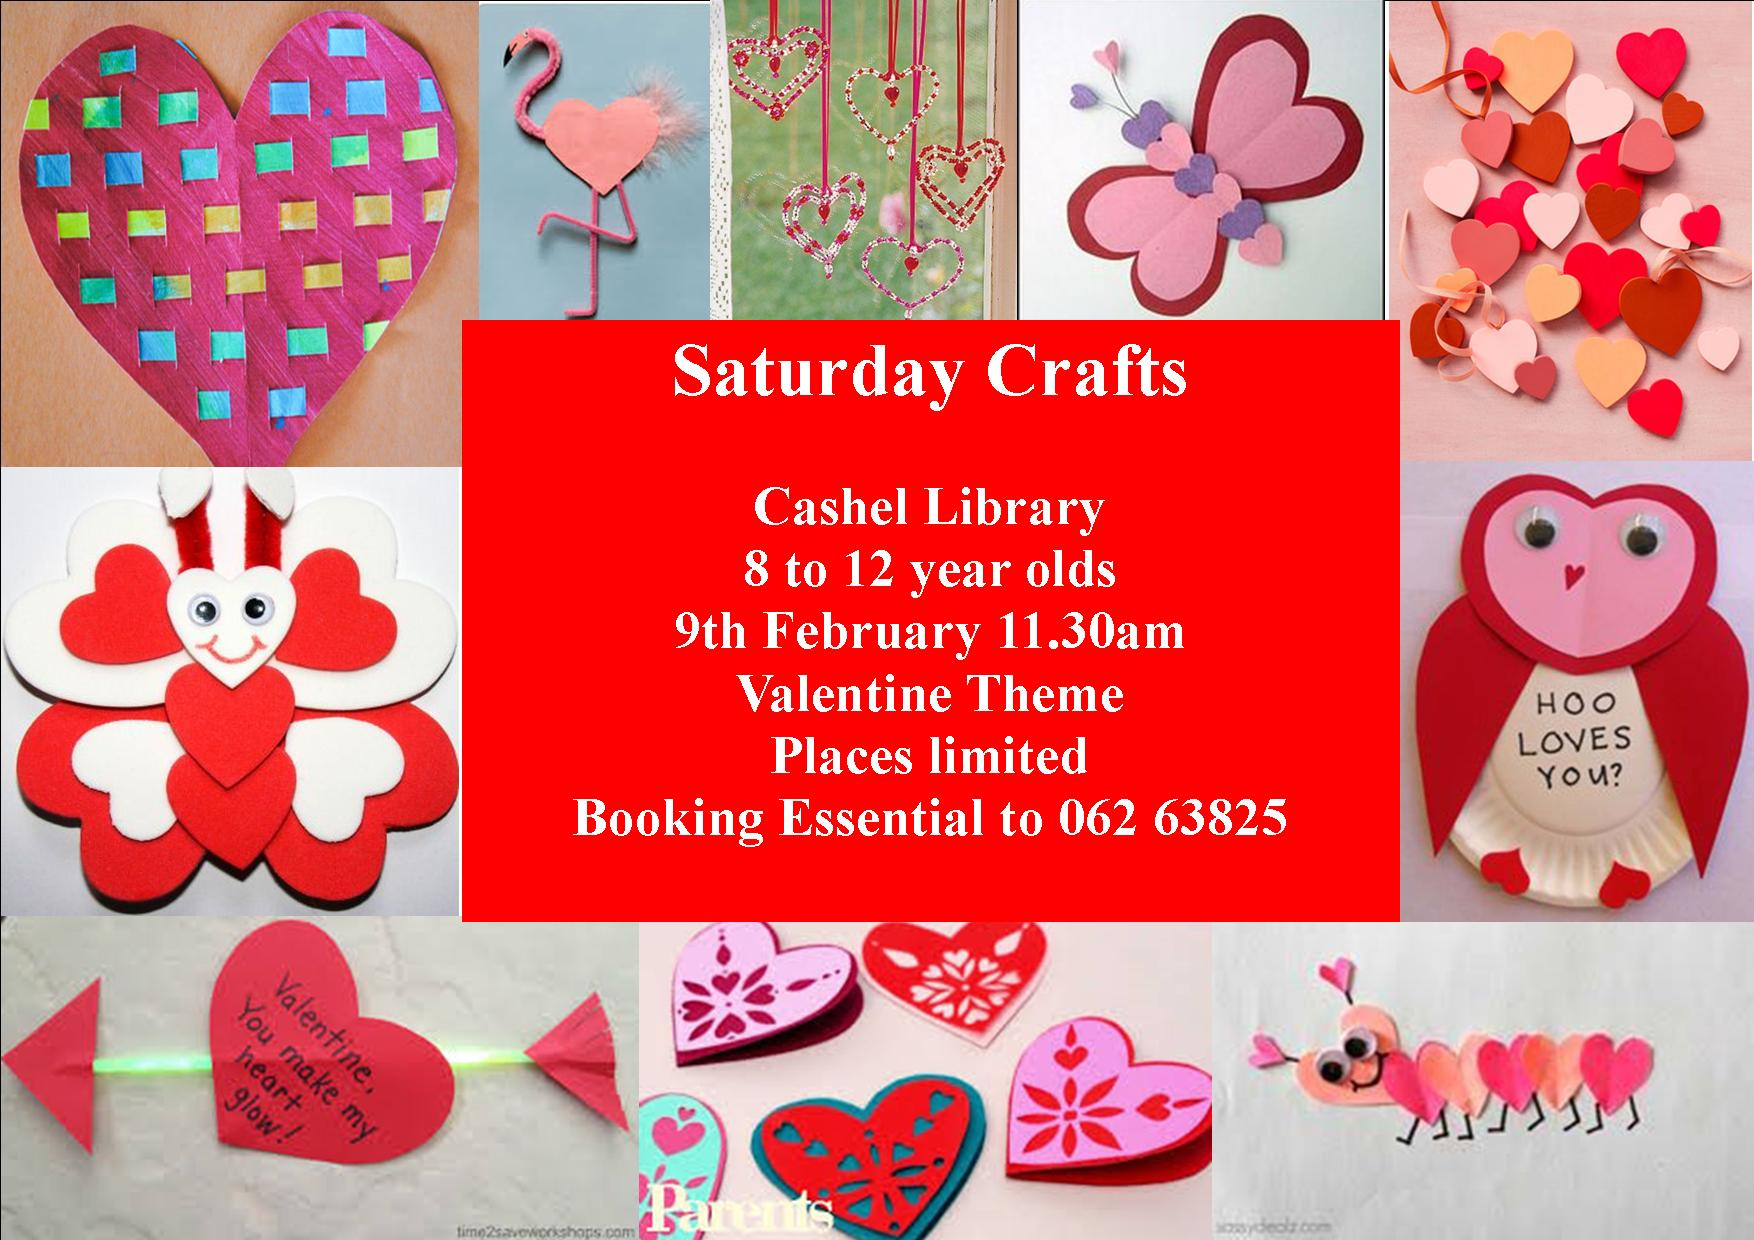 Saturday Crafts For Kids In Cashel Library